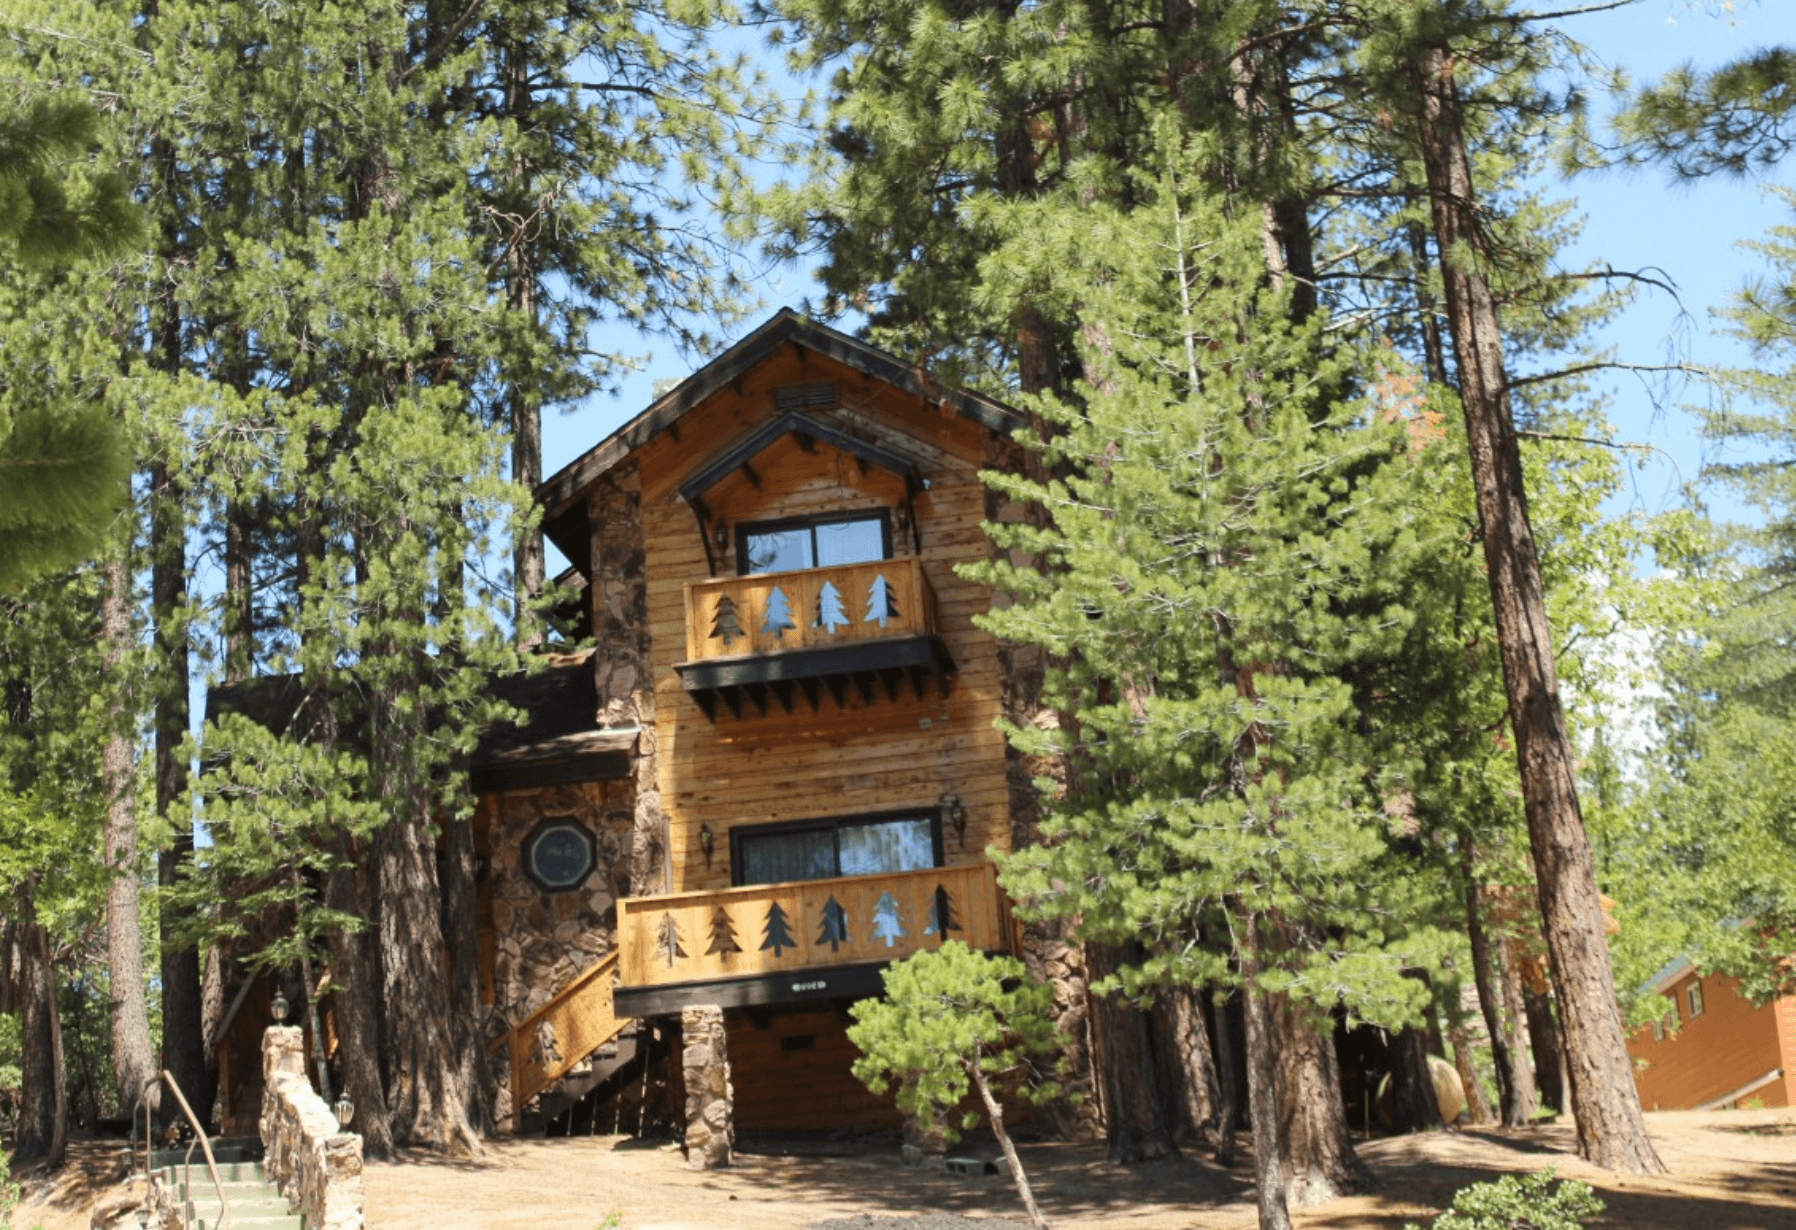 park homes in rent vacation featured yosemite rentals cabins for national rental